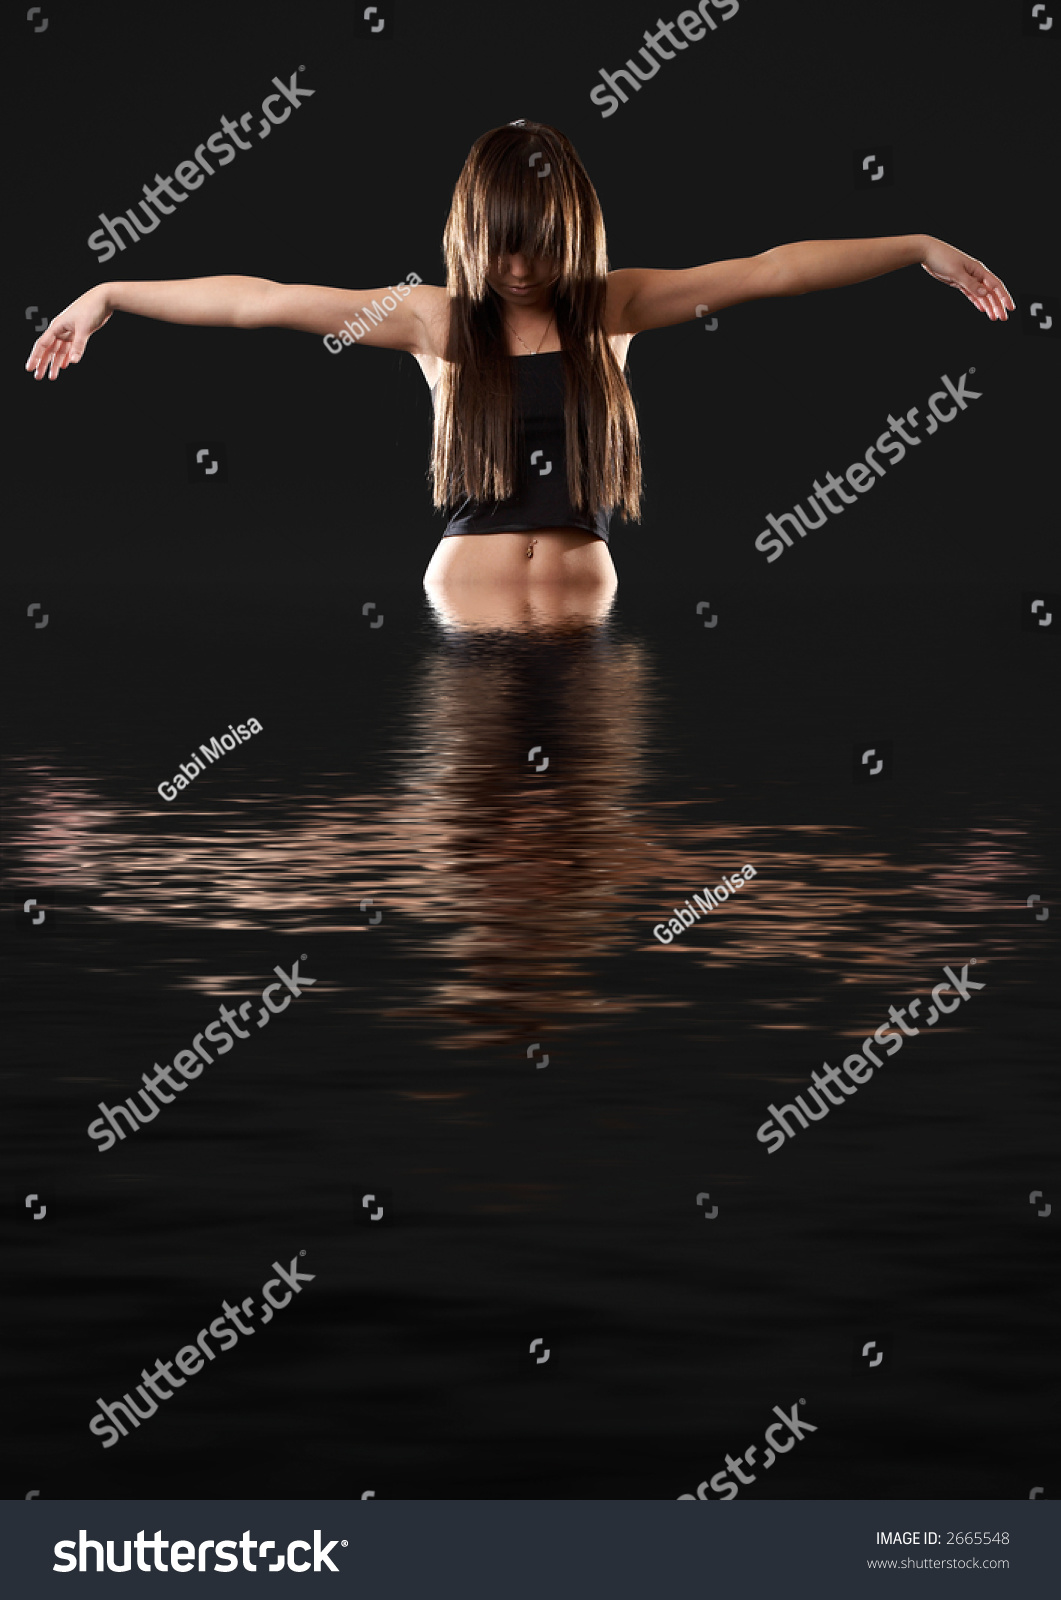 Emerging from water